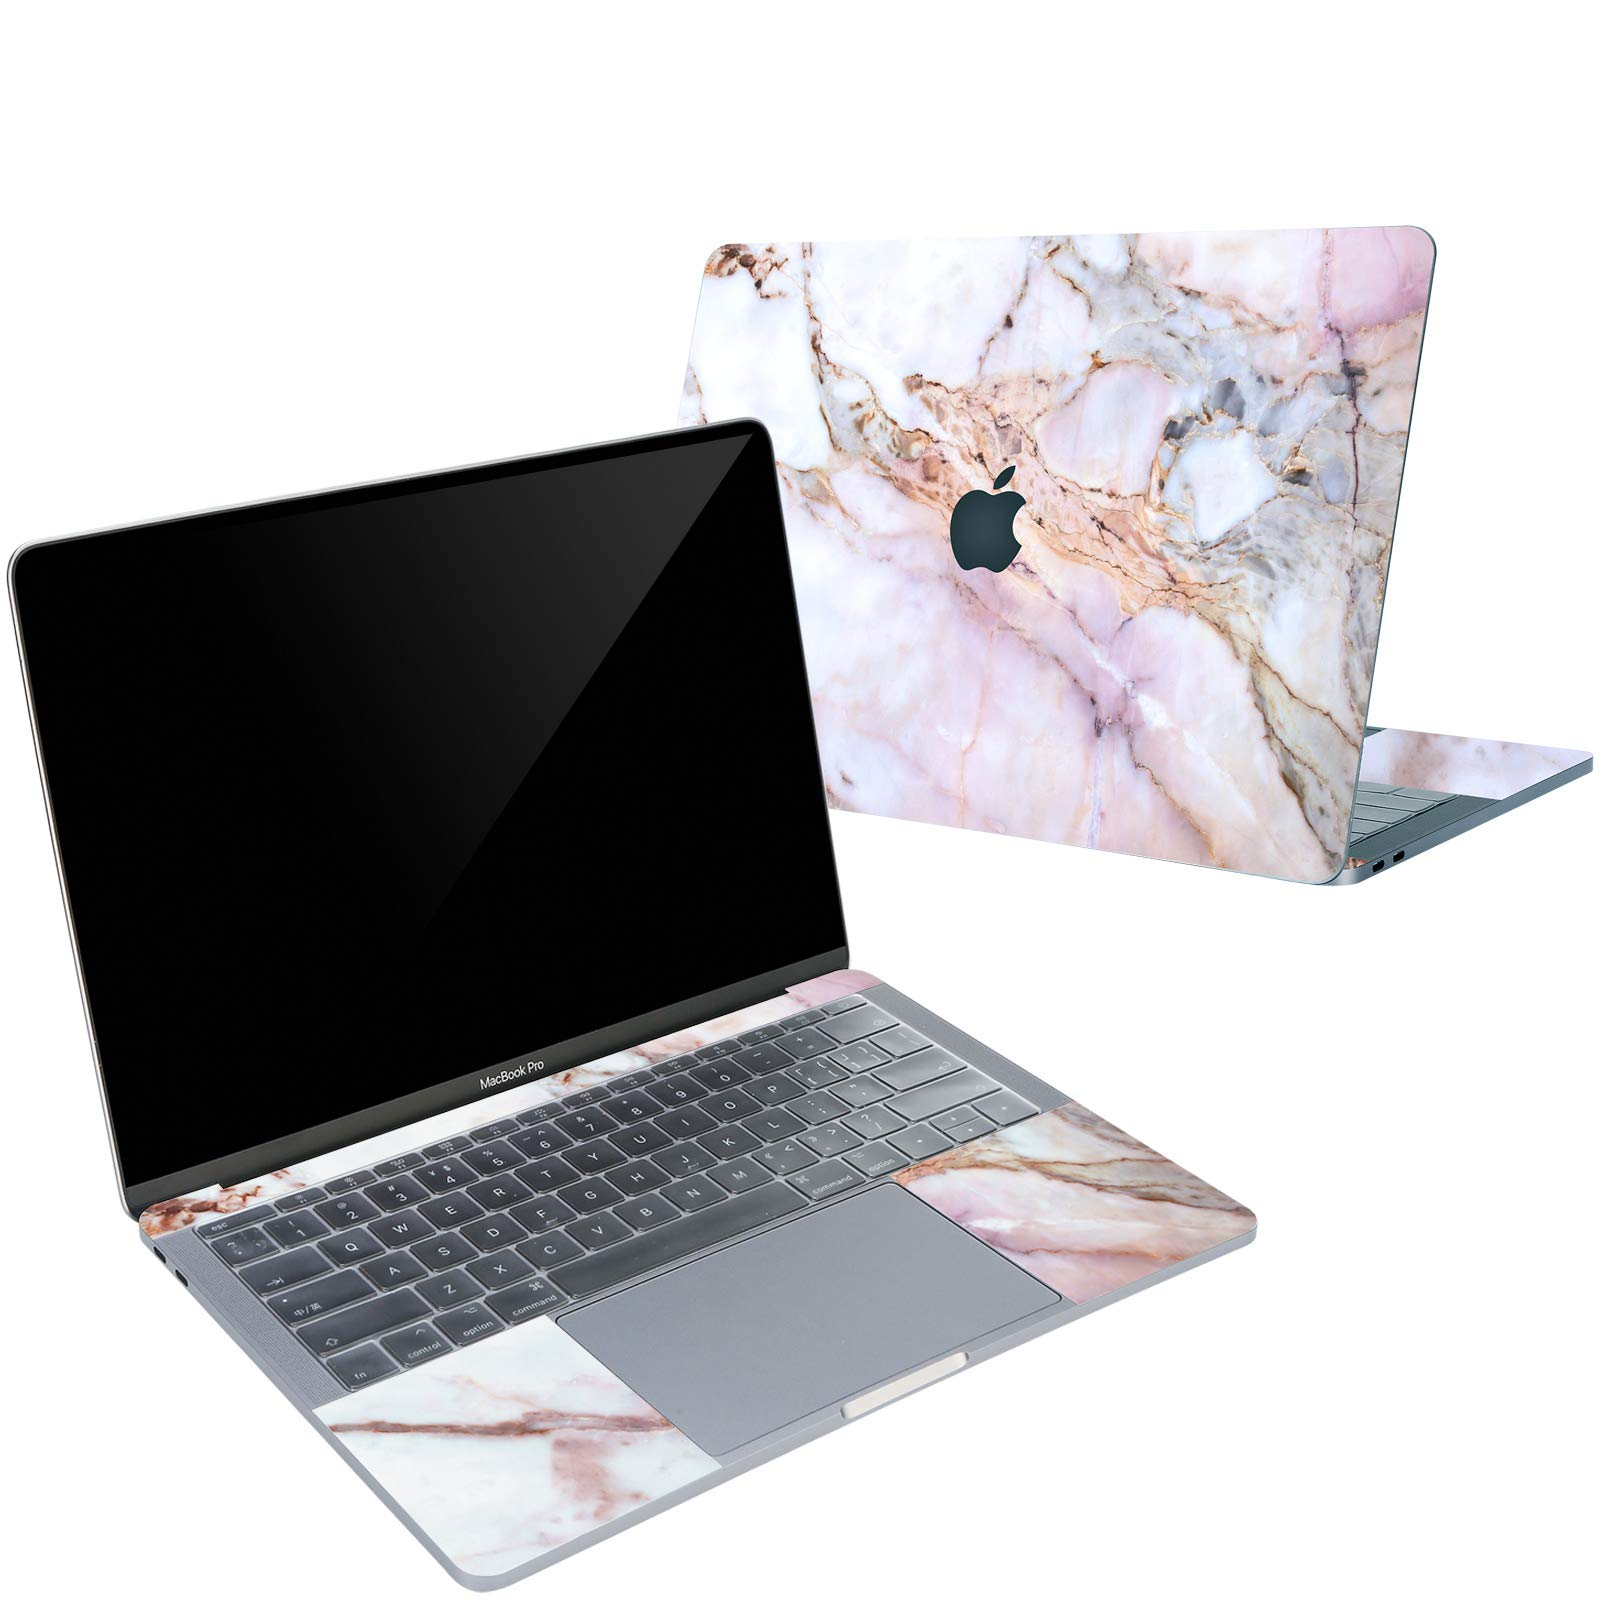 Digi-Tatoo 4-in-1 MacBook Skin Decal Sticker Compatible with Apple MacBook Air 13 Inch 2018 Release (Model A1932), Full Body Protective, Removable and Anti-Scratch, Cracked Marble